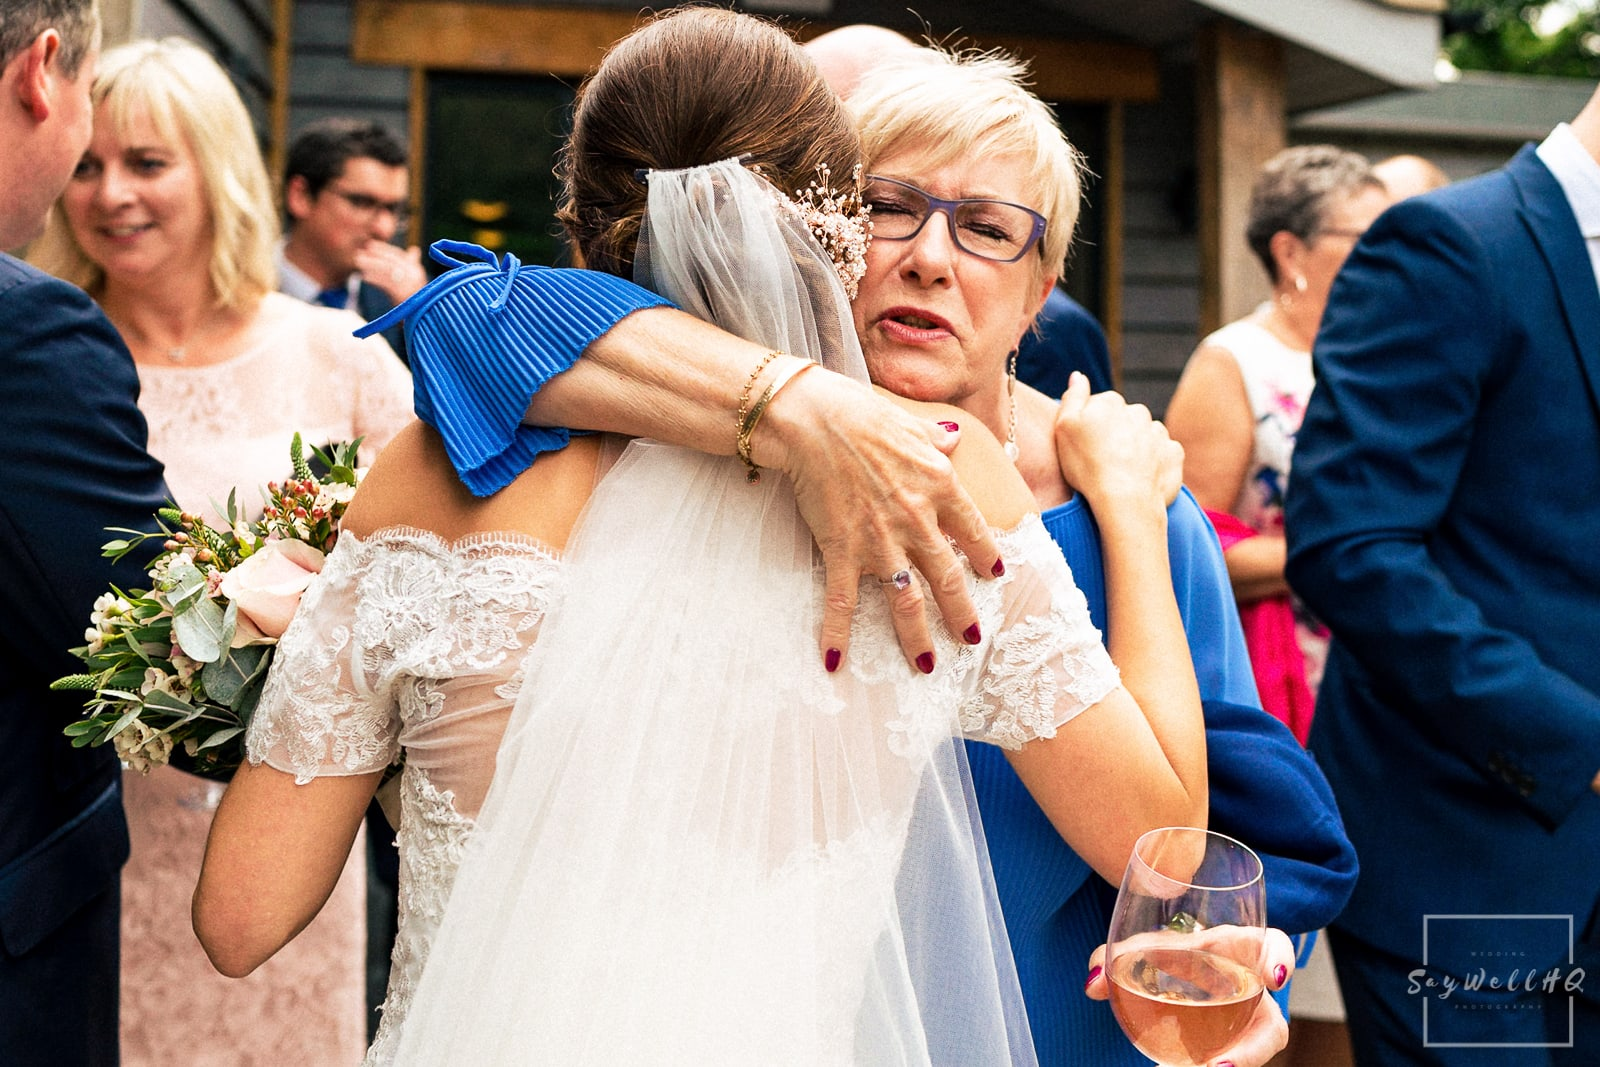 The Chequers Inn Woolsthorpe Wedding Photography - bride hugs with guests in the pub garden